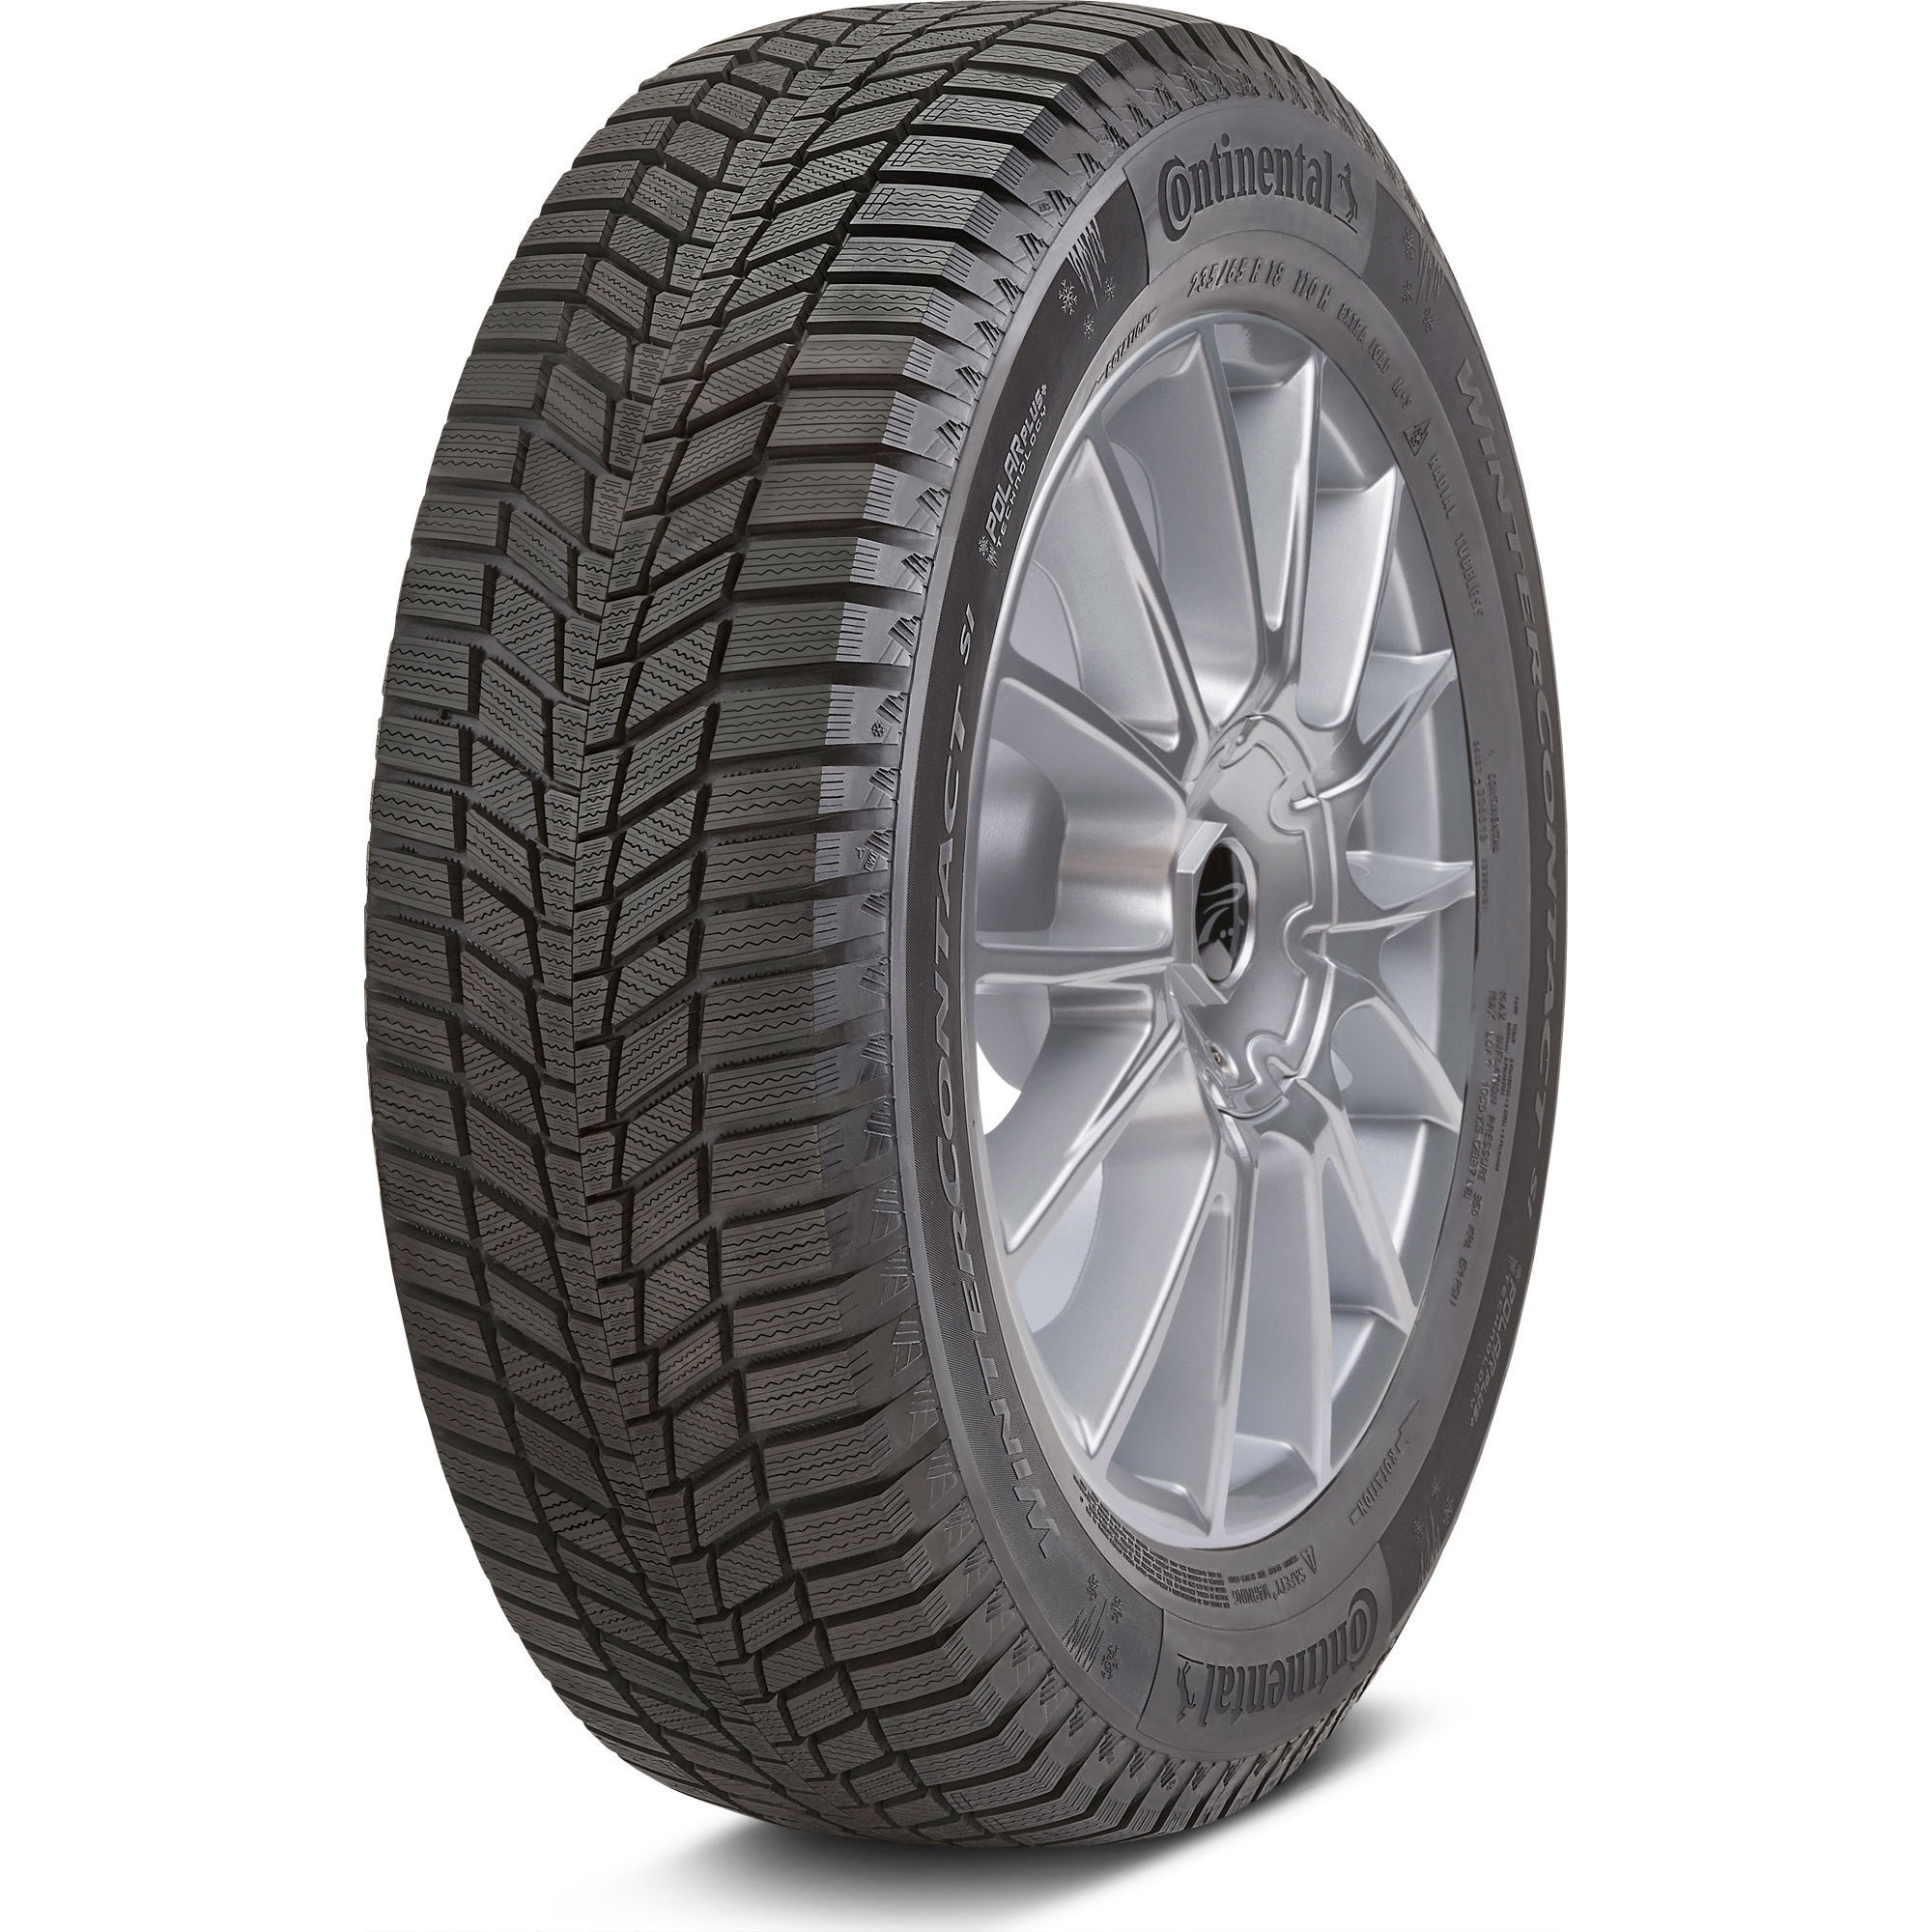 What Is The Mountain Snowflake Symbol On A Tire Tirebuyer